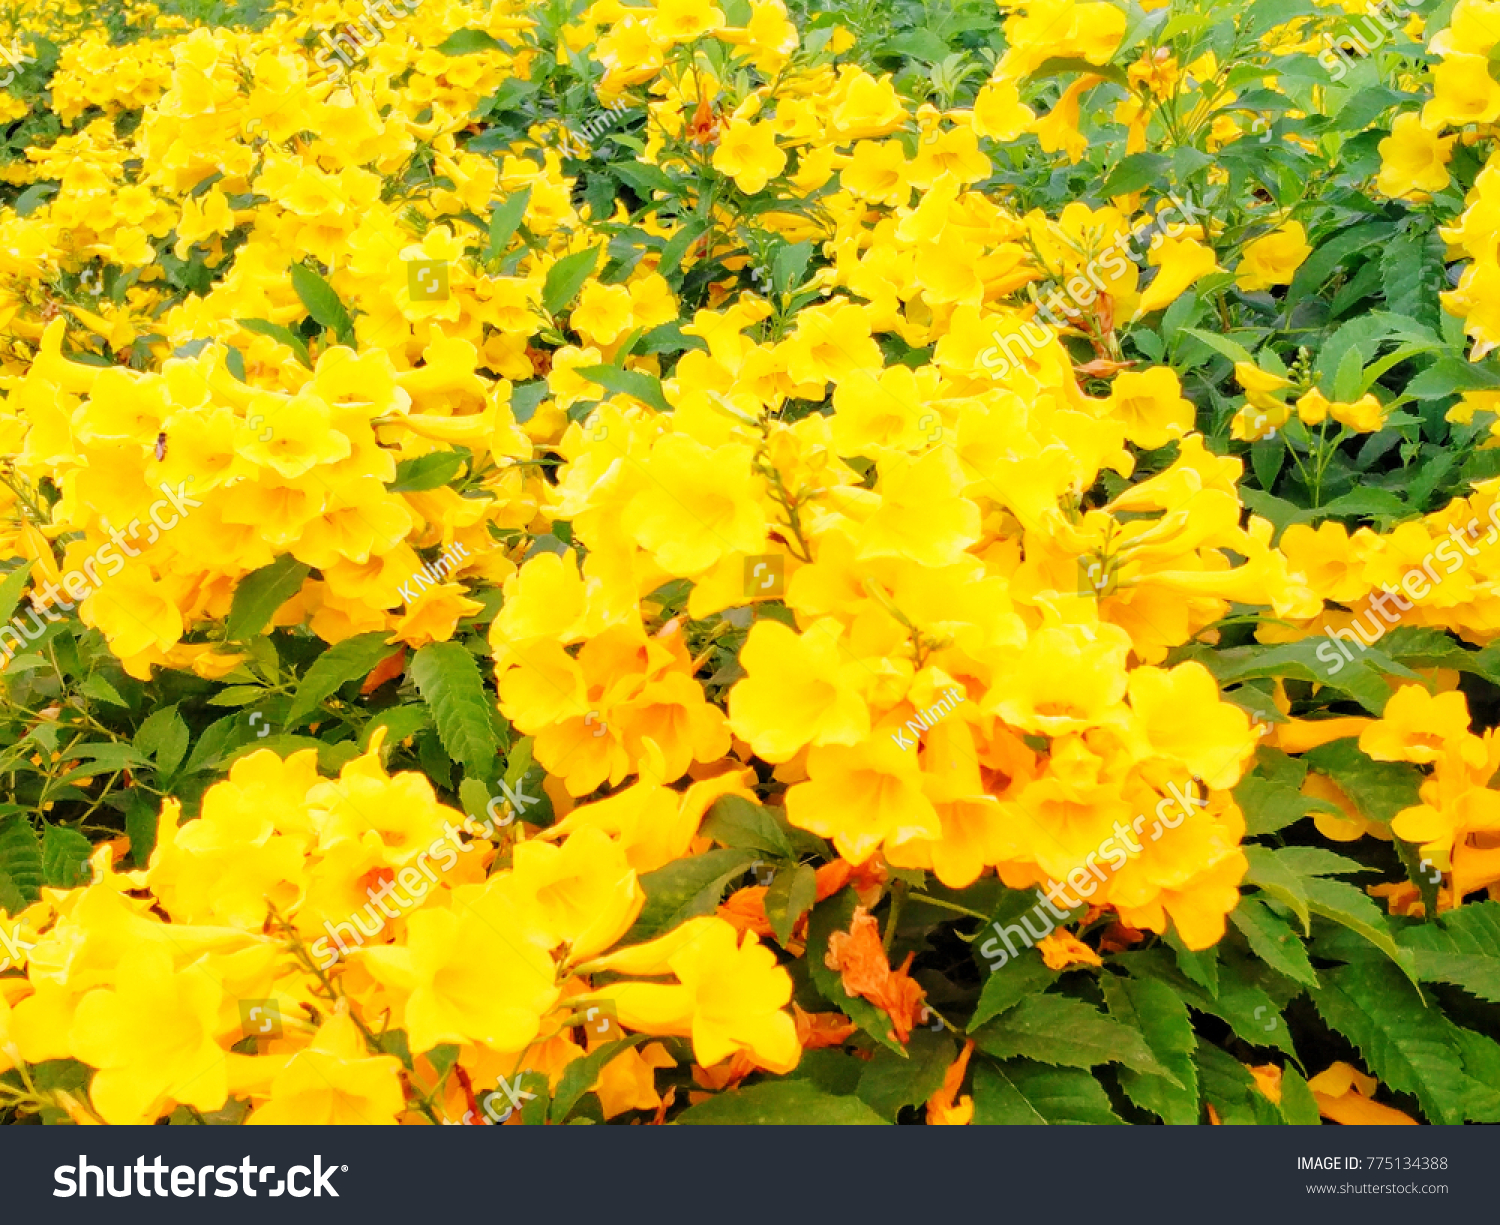 Yellow Flower Blossom Winter This Flower Stock Photo Safe To Use